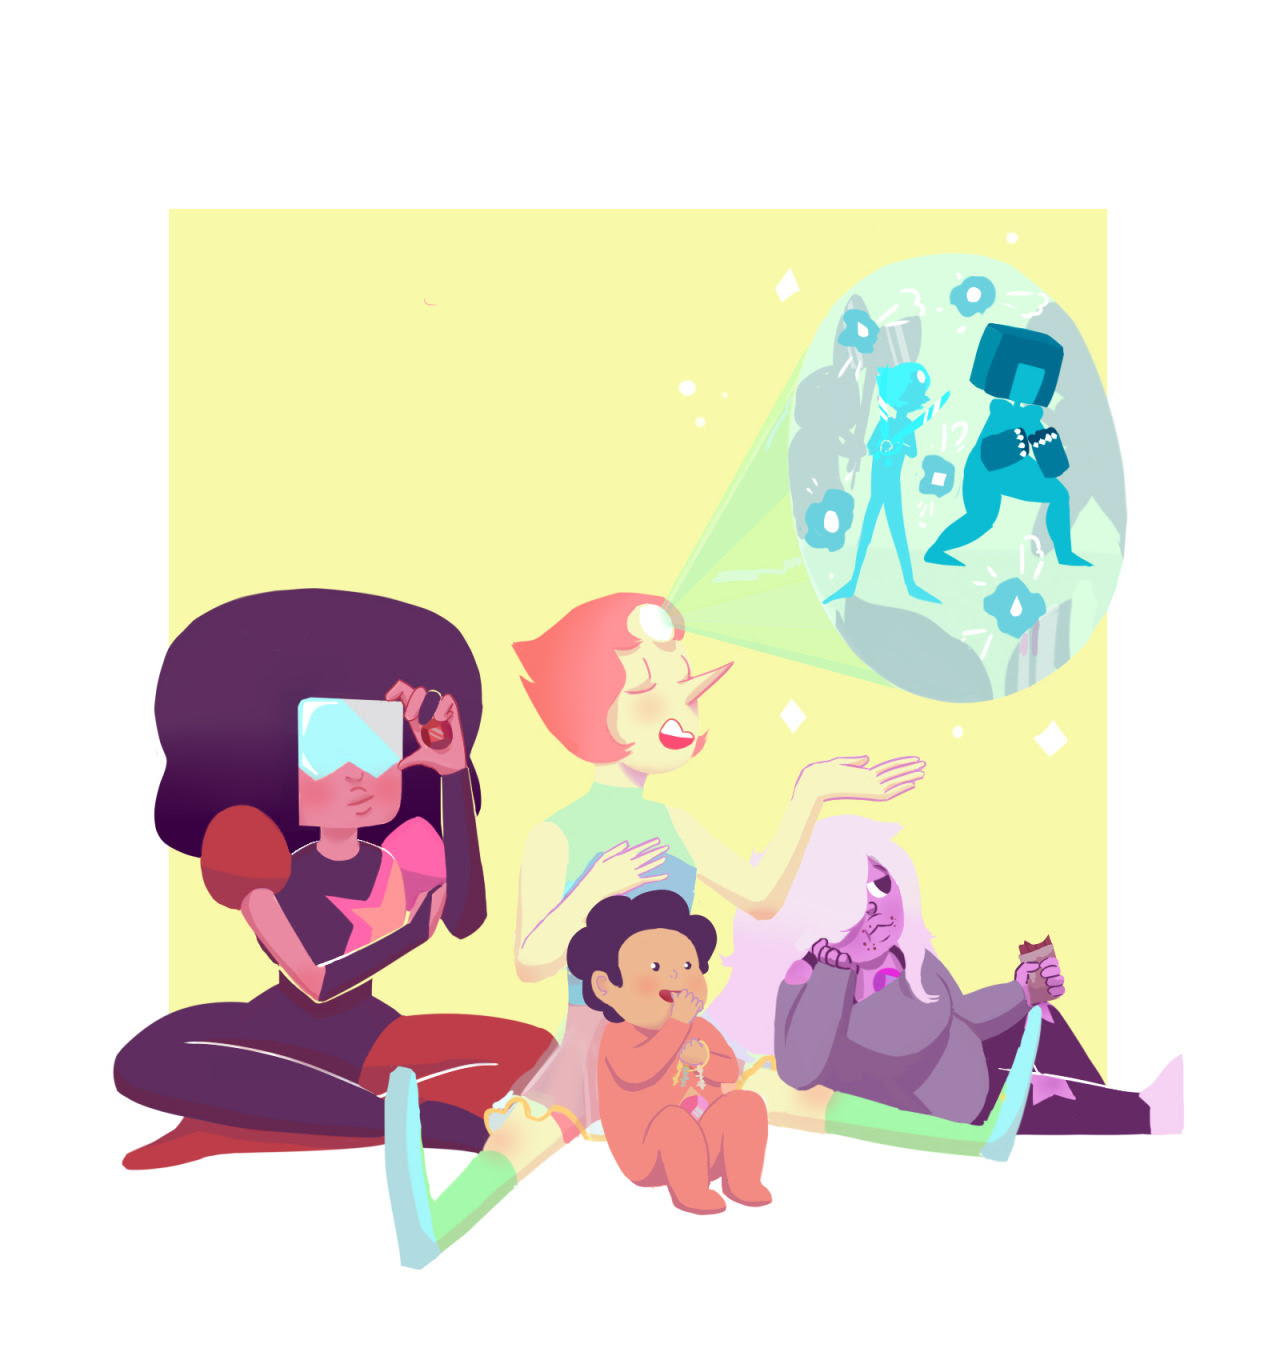 Thank you all for 300 followers! I don't know what that many people are doing here all at once, but we're in this my dudes, we're in this together for the long haul. And since you liked baby steven...